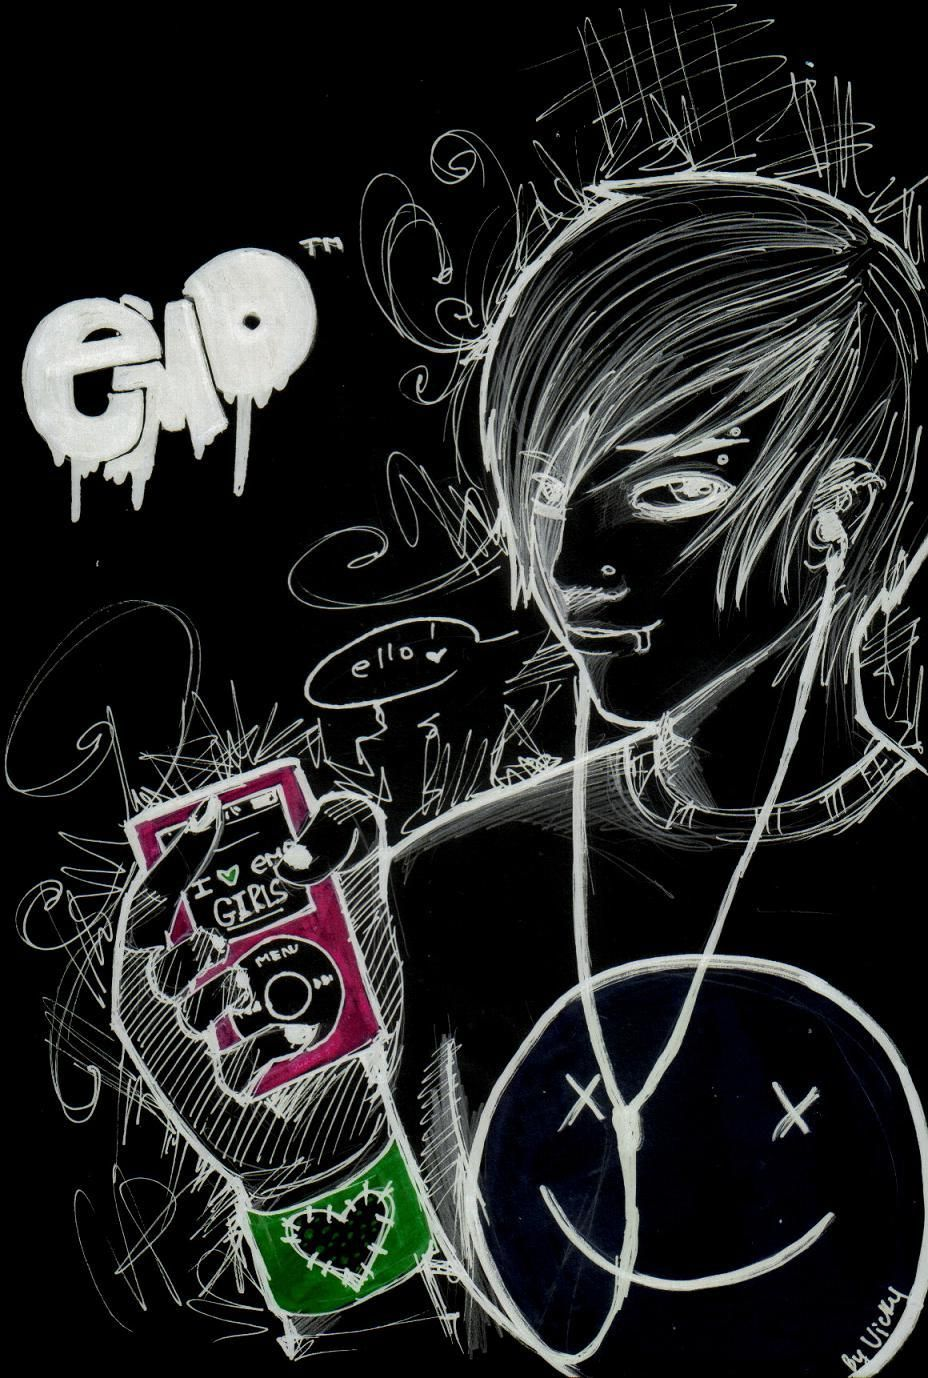 cartoon emo | Emo Wallpapers of Emo Boys and Girls | all images in 2019 | Pinterest | Emo ...